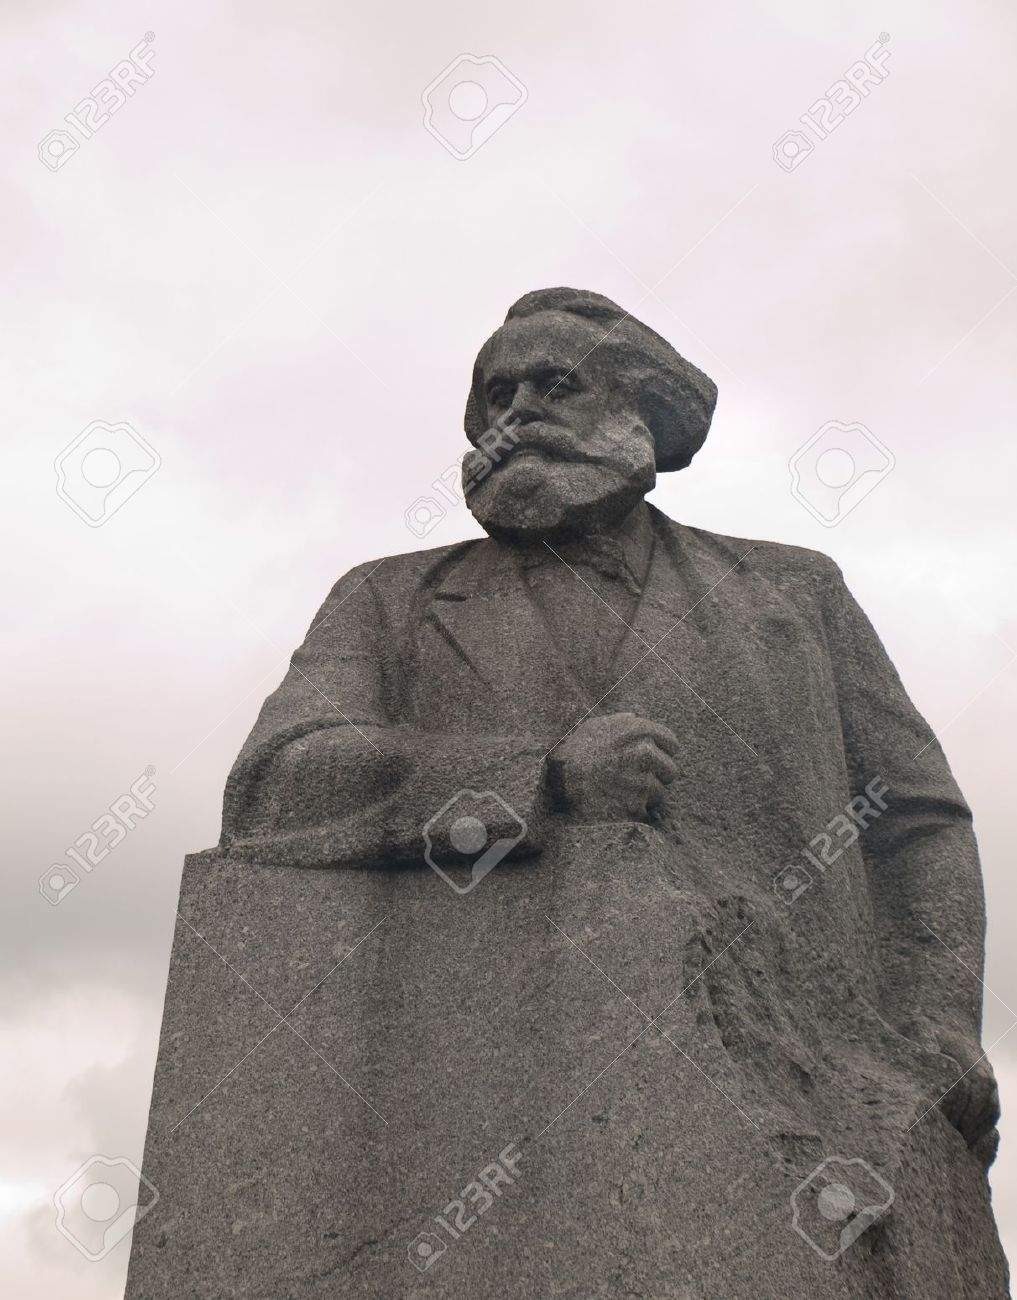 Statue of Karl Marx in Revolution Square Moscow Russia Stock Photo - 13704345